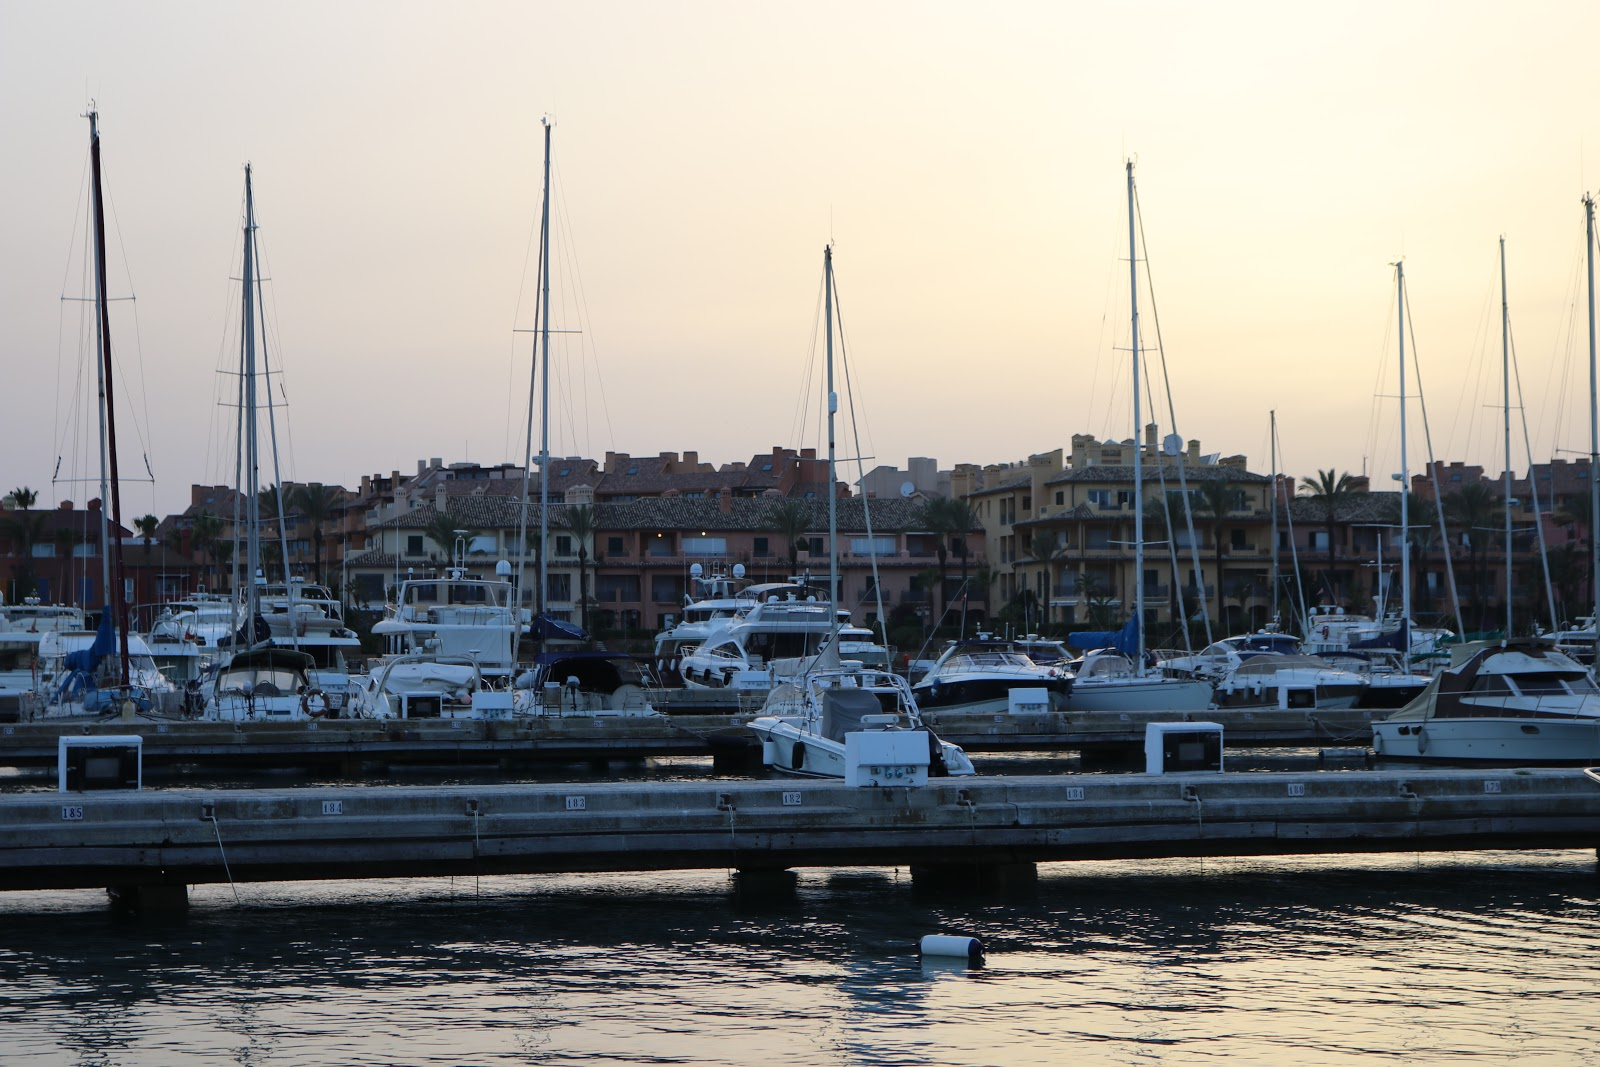 Boats in the Harbour, in the Sotogrande Puerto, Spain